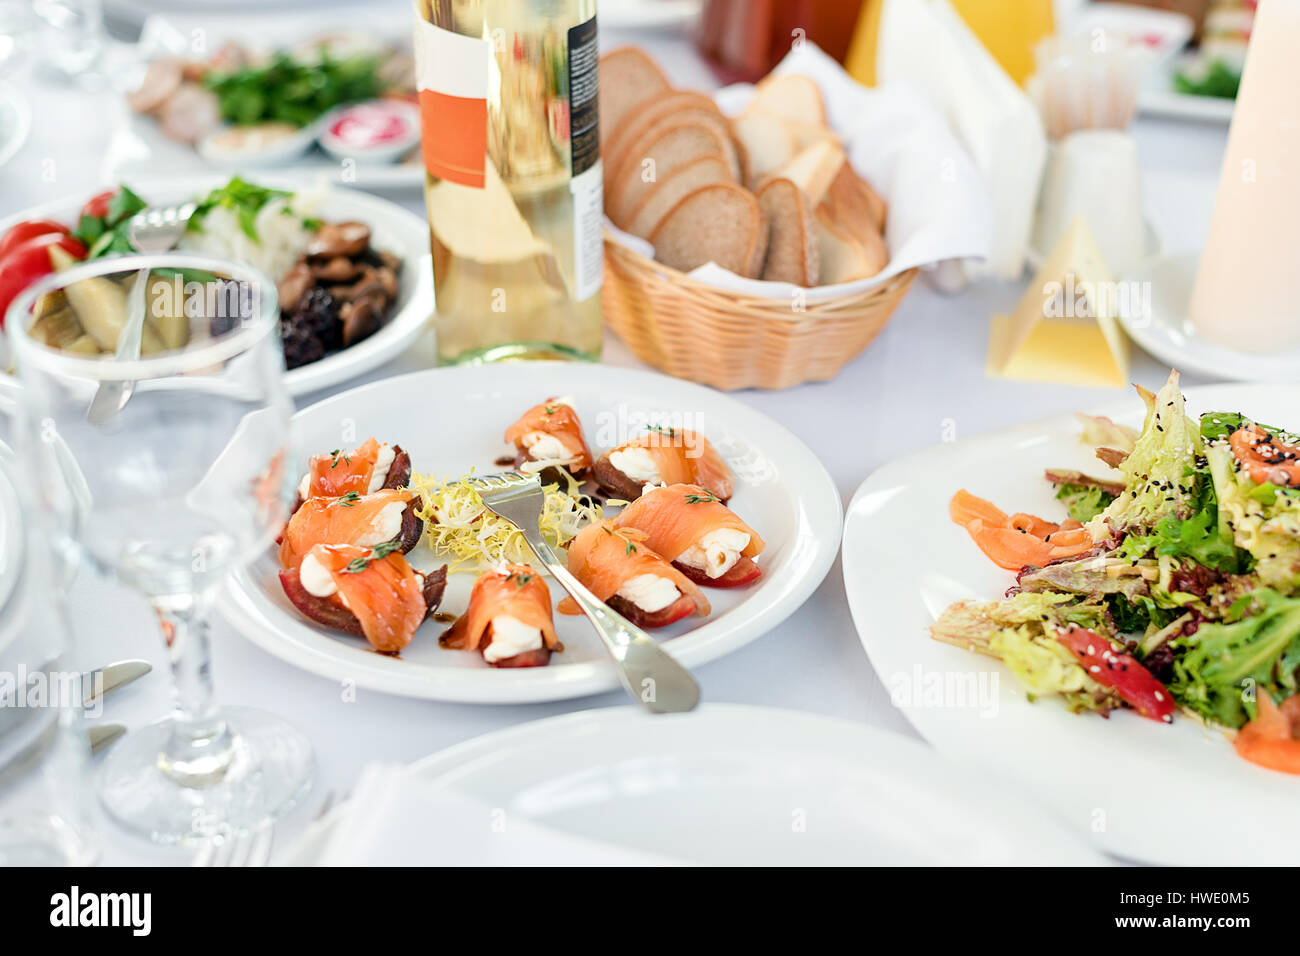 Restaurant Table With Food Tasty Appetizers Salads